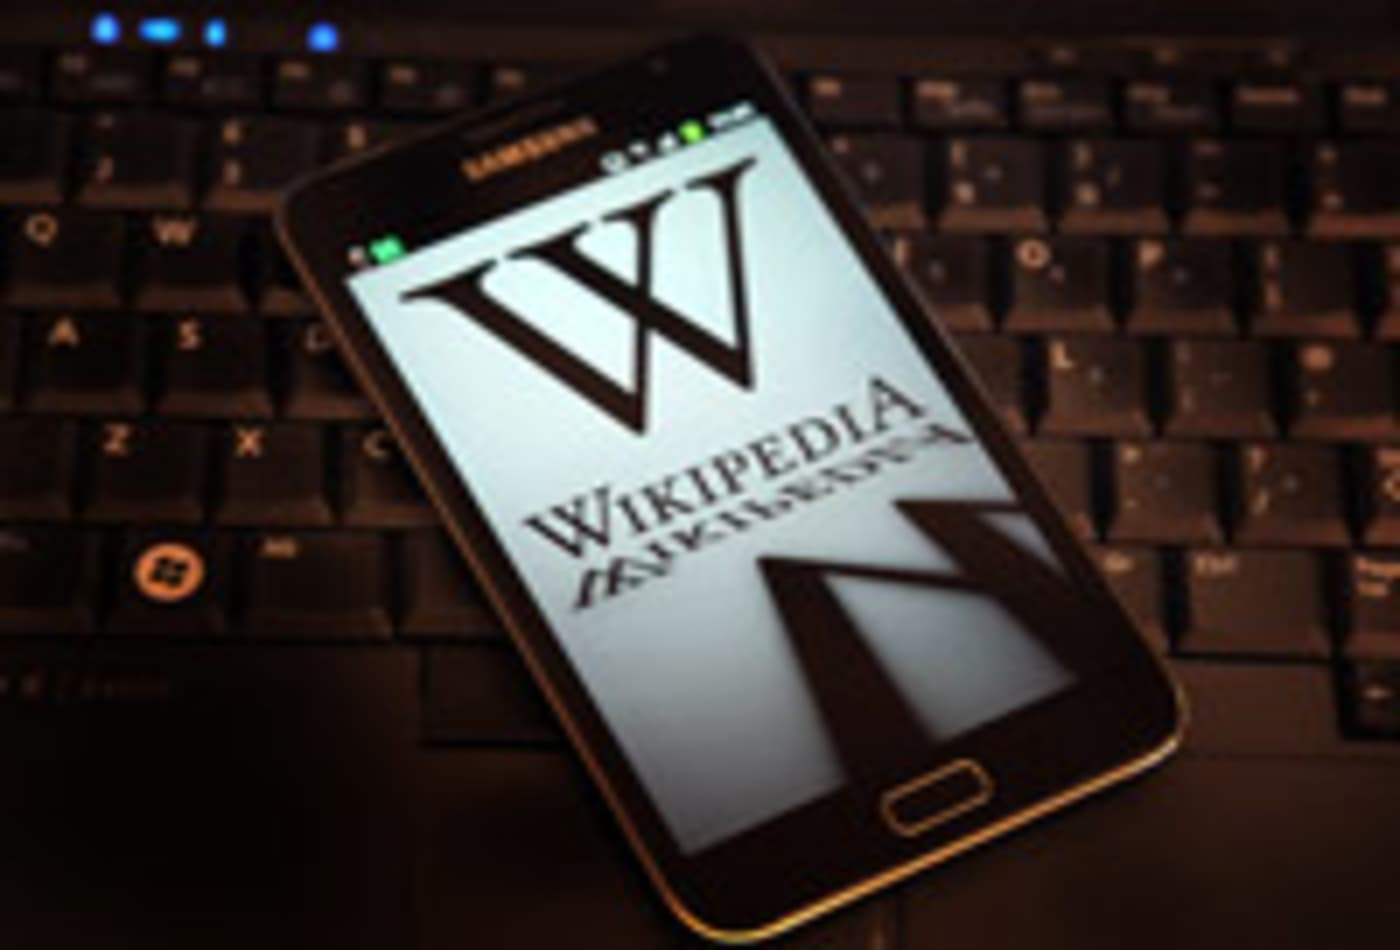 Wikipedia is unblocked in Turkey after more than two years as court deems ban 'unconstitutional'